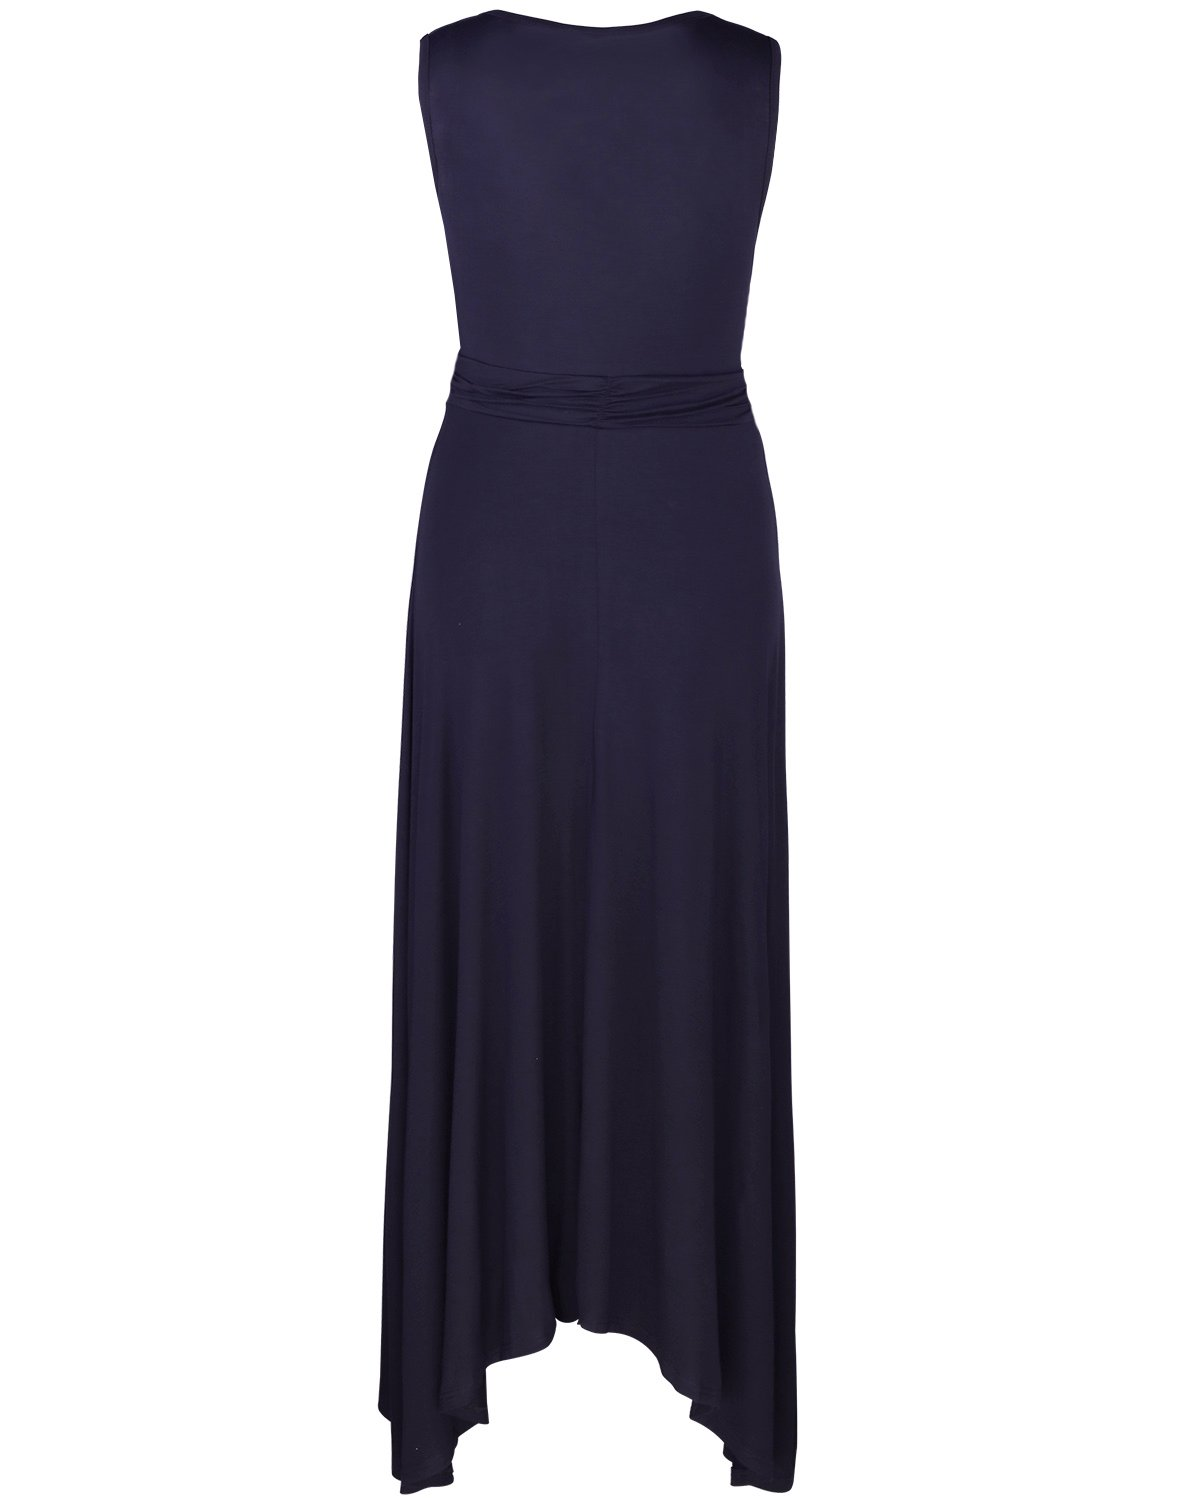 OUGES Women's V Neck Sleeveless Summer Casual Long Maxi Dresses(Navy,S) ¡­ by OUGES (Image #4)